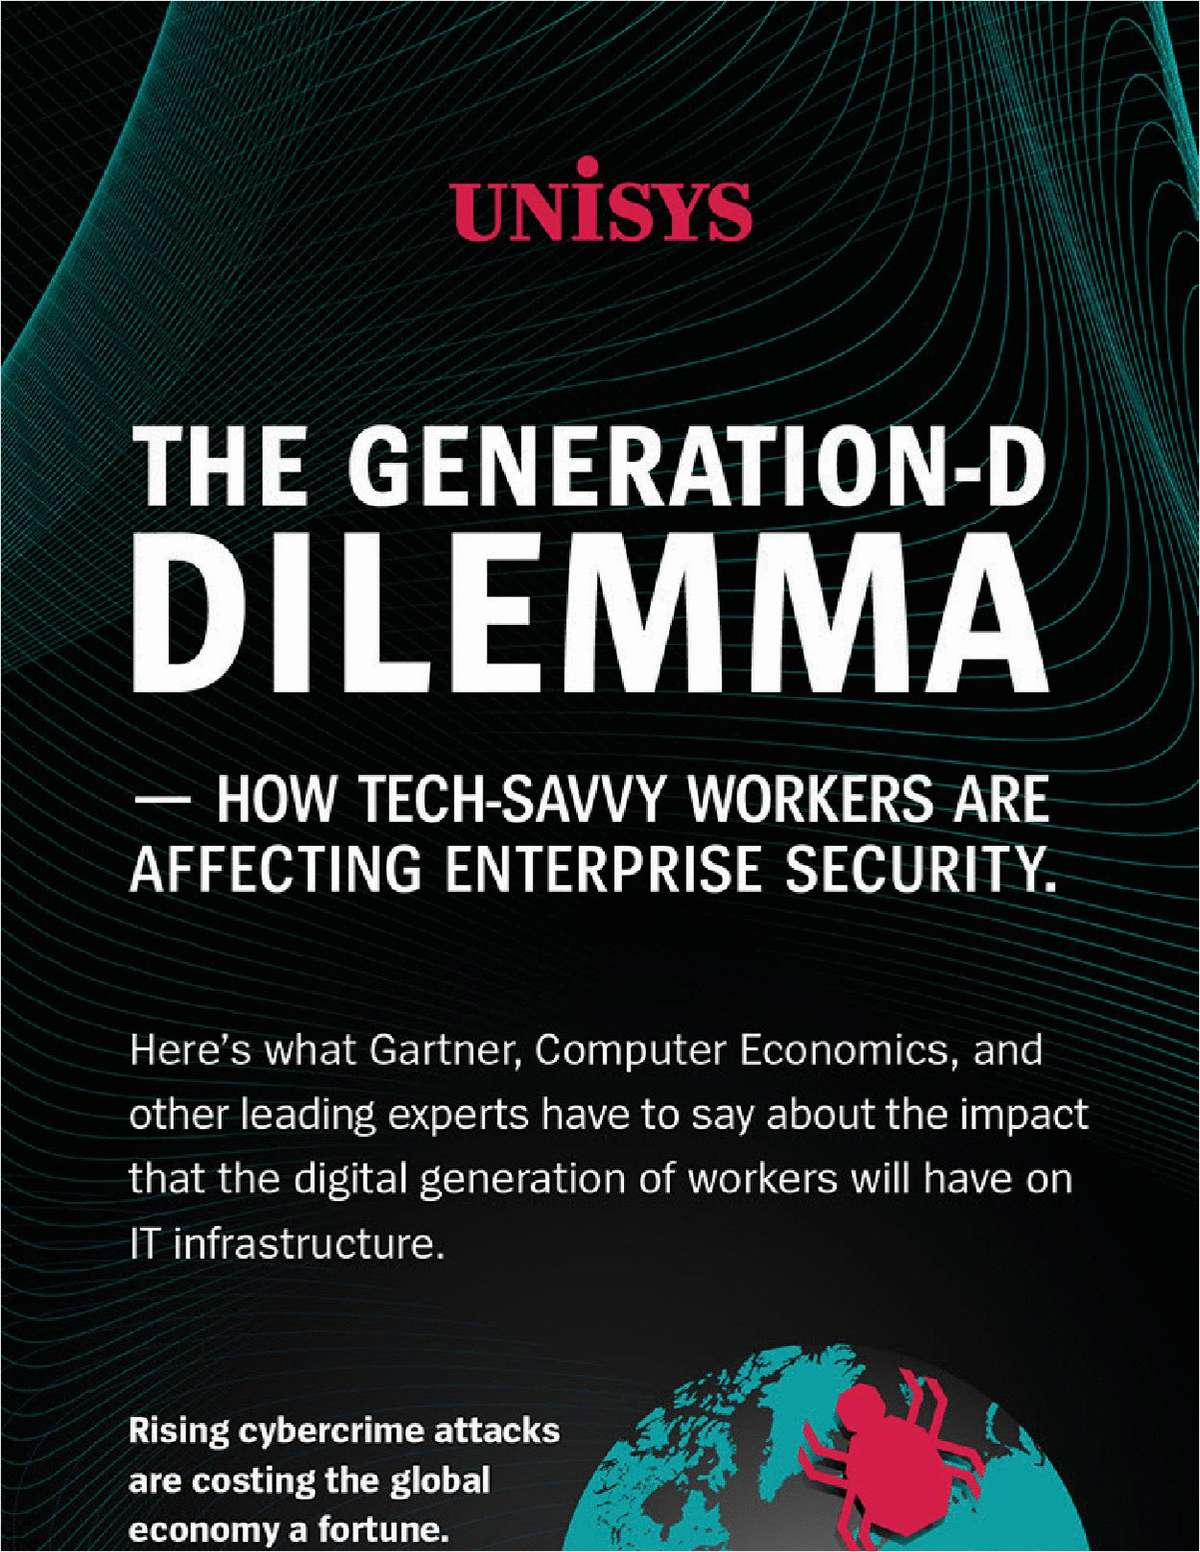 The Generation-D Dilemma: How Tech-Savvy Workers are Affecting Enterprise Security